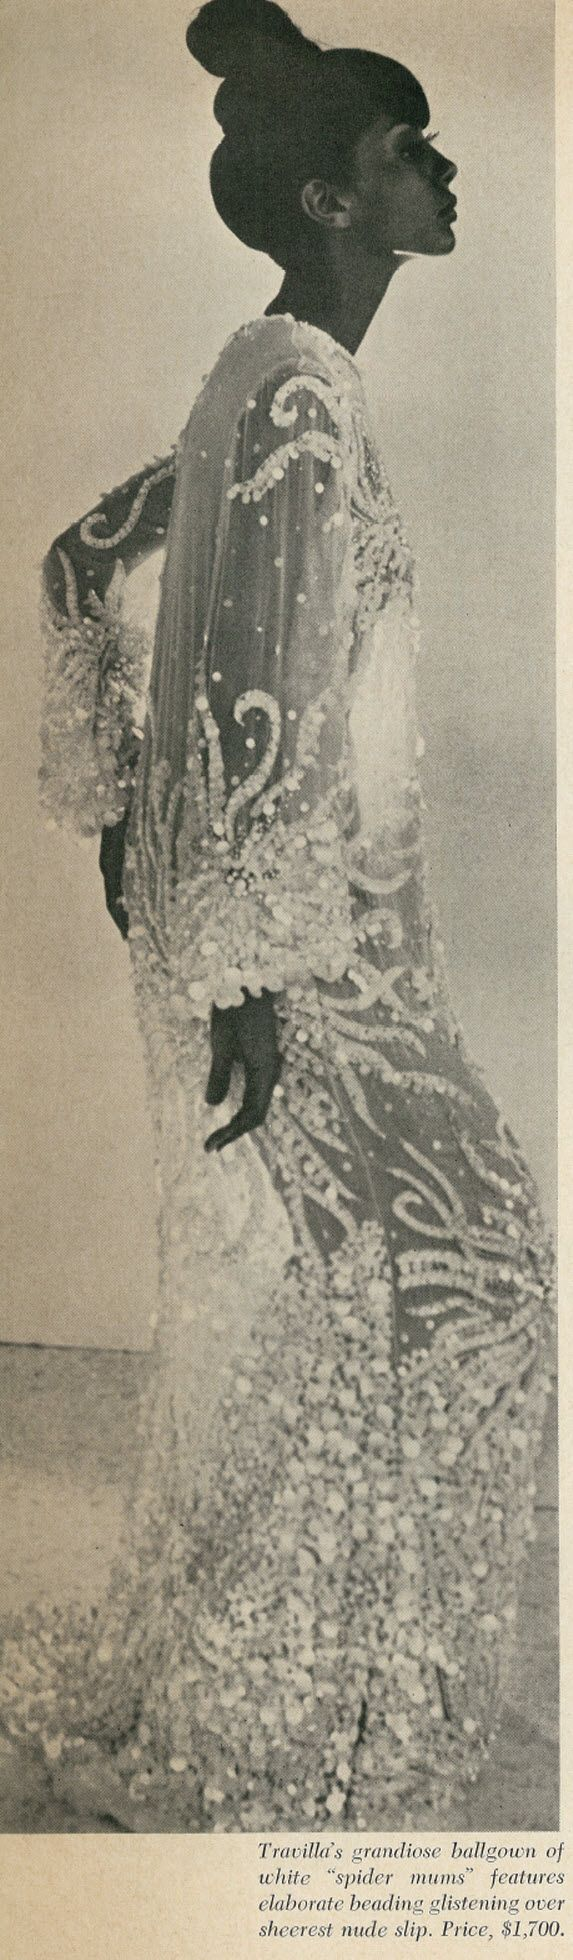 All sizes | 1966 Revealing Fashions, Fashion Fair, Beaded Ballgown by Travilla | Flickr - Photo Sharing!